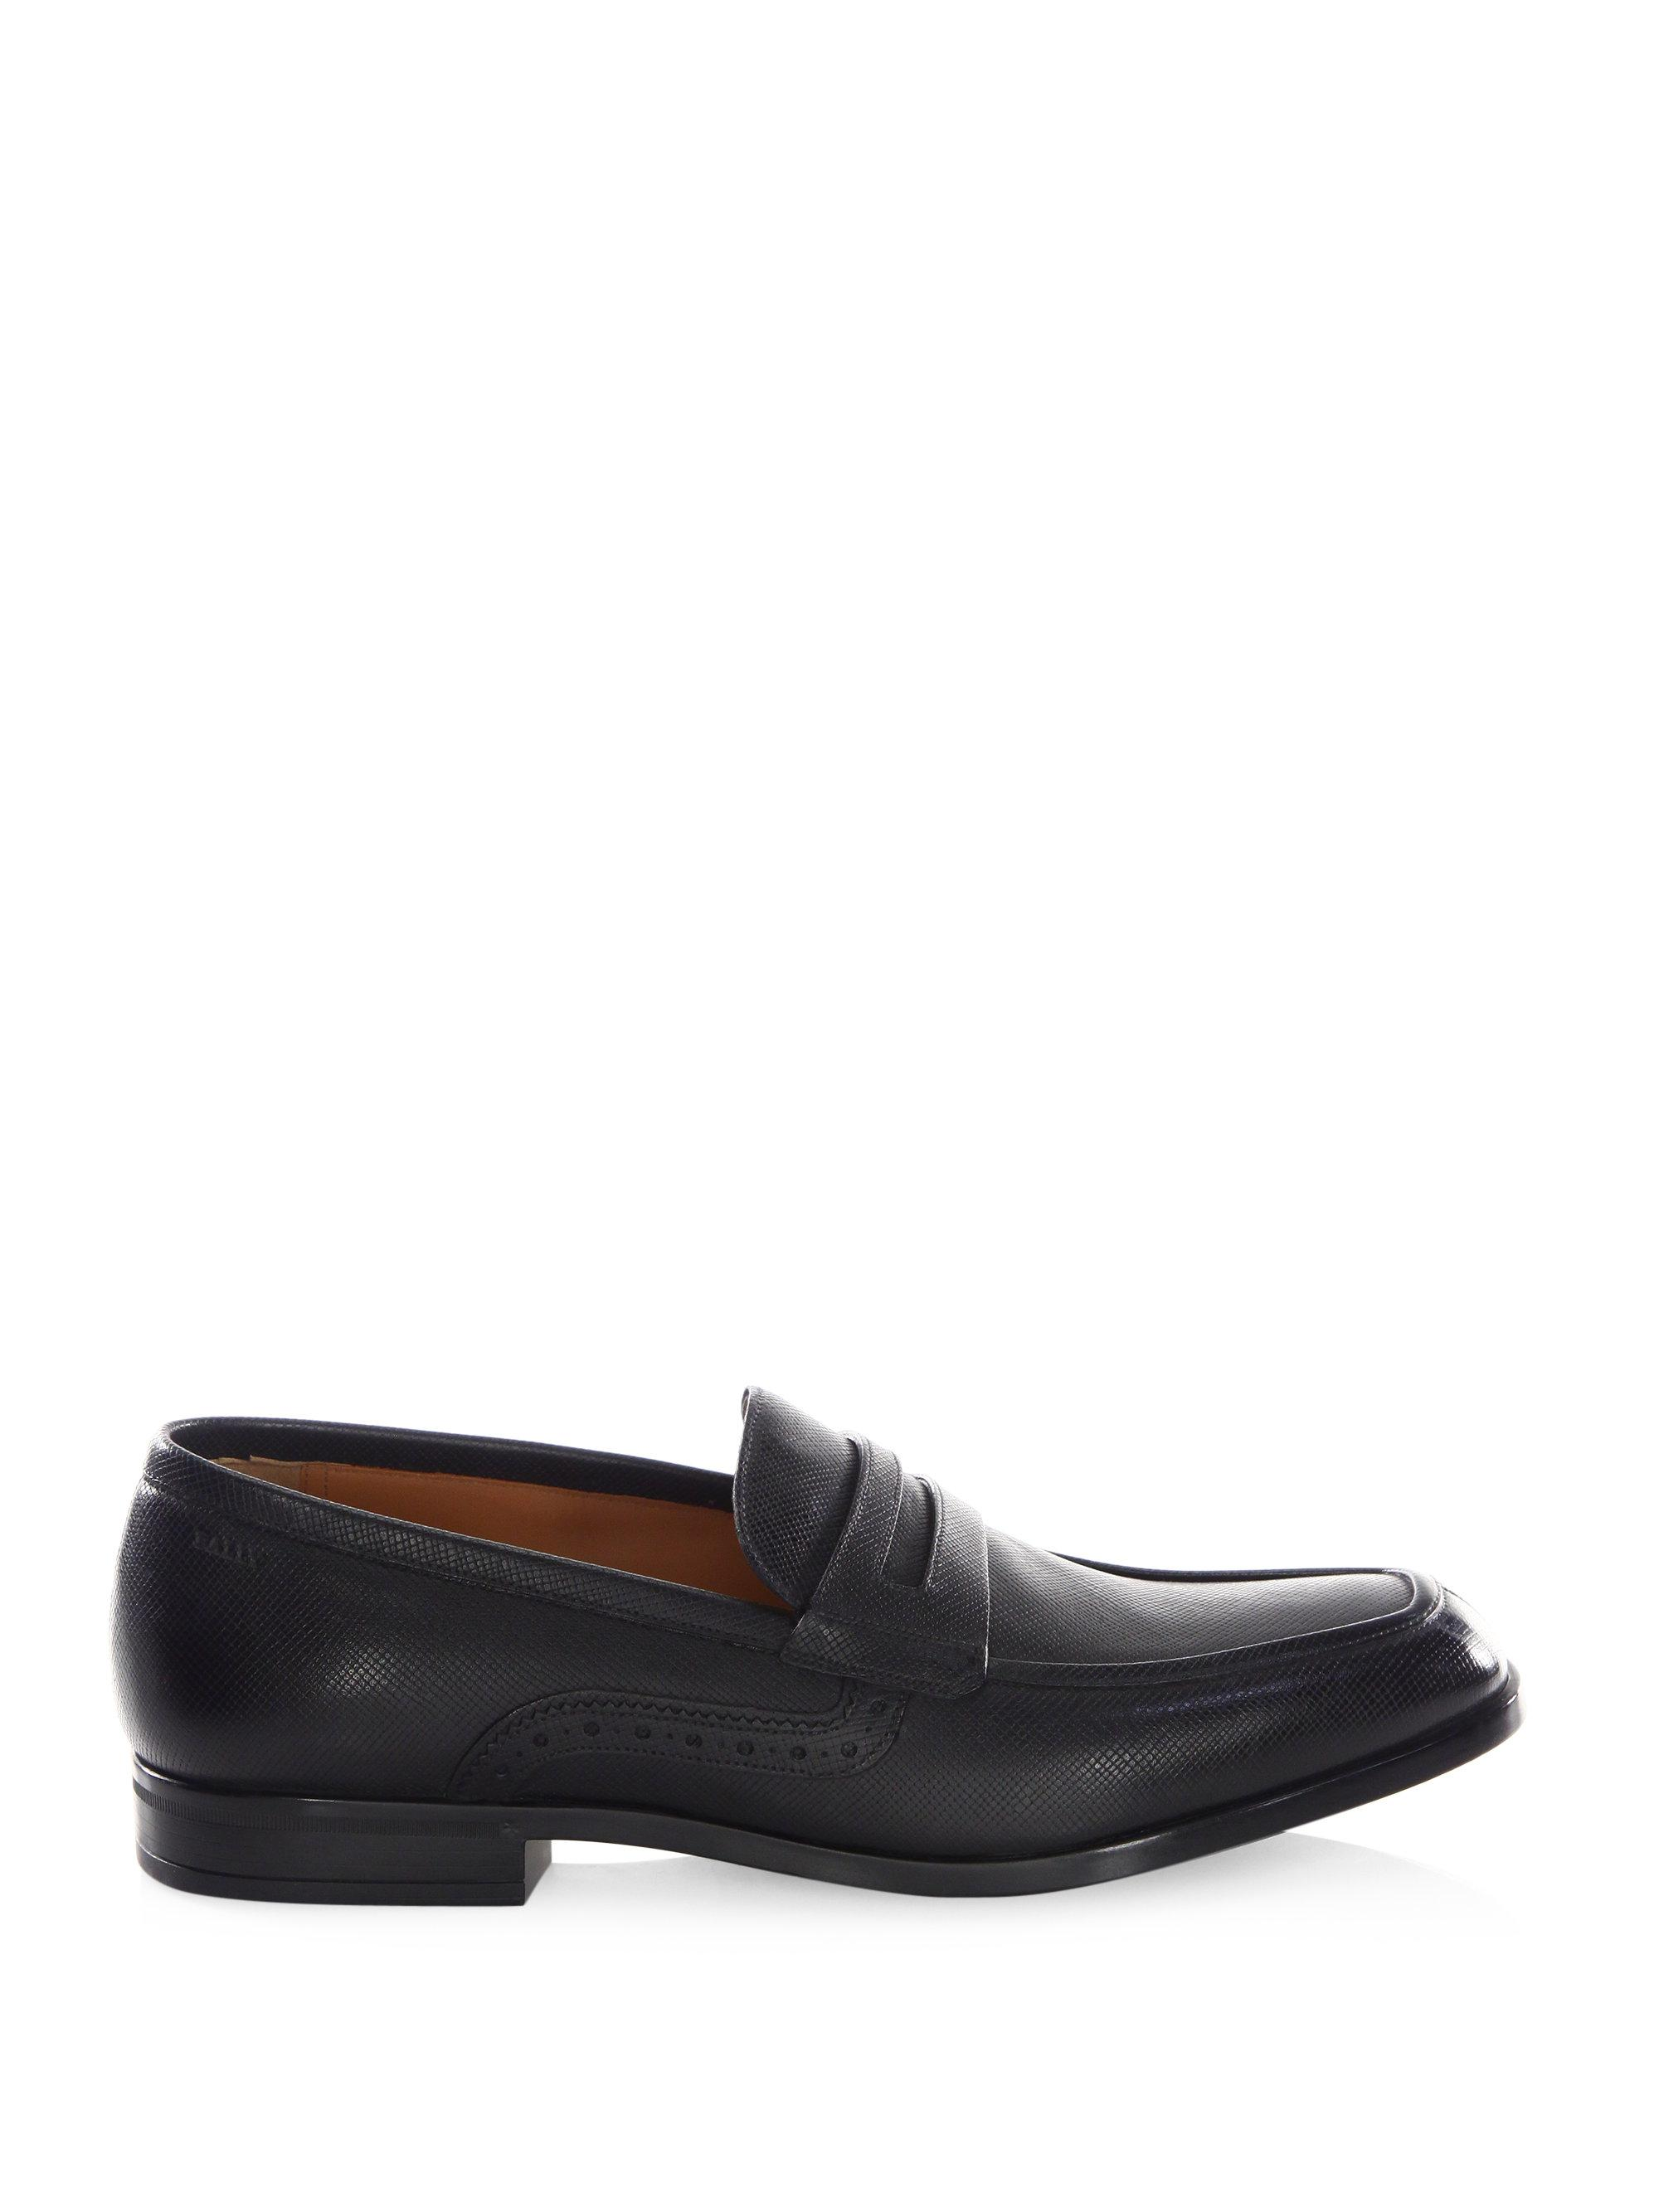 Bally Lauto Saffiano Leather Penny Loafers in Black for ...